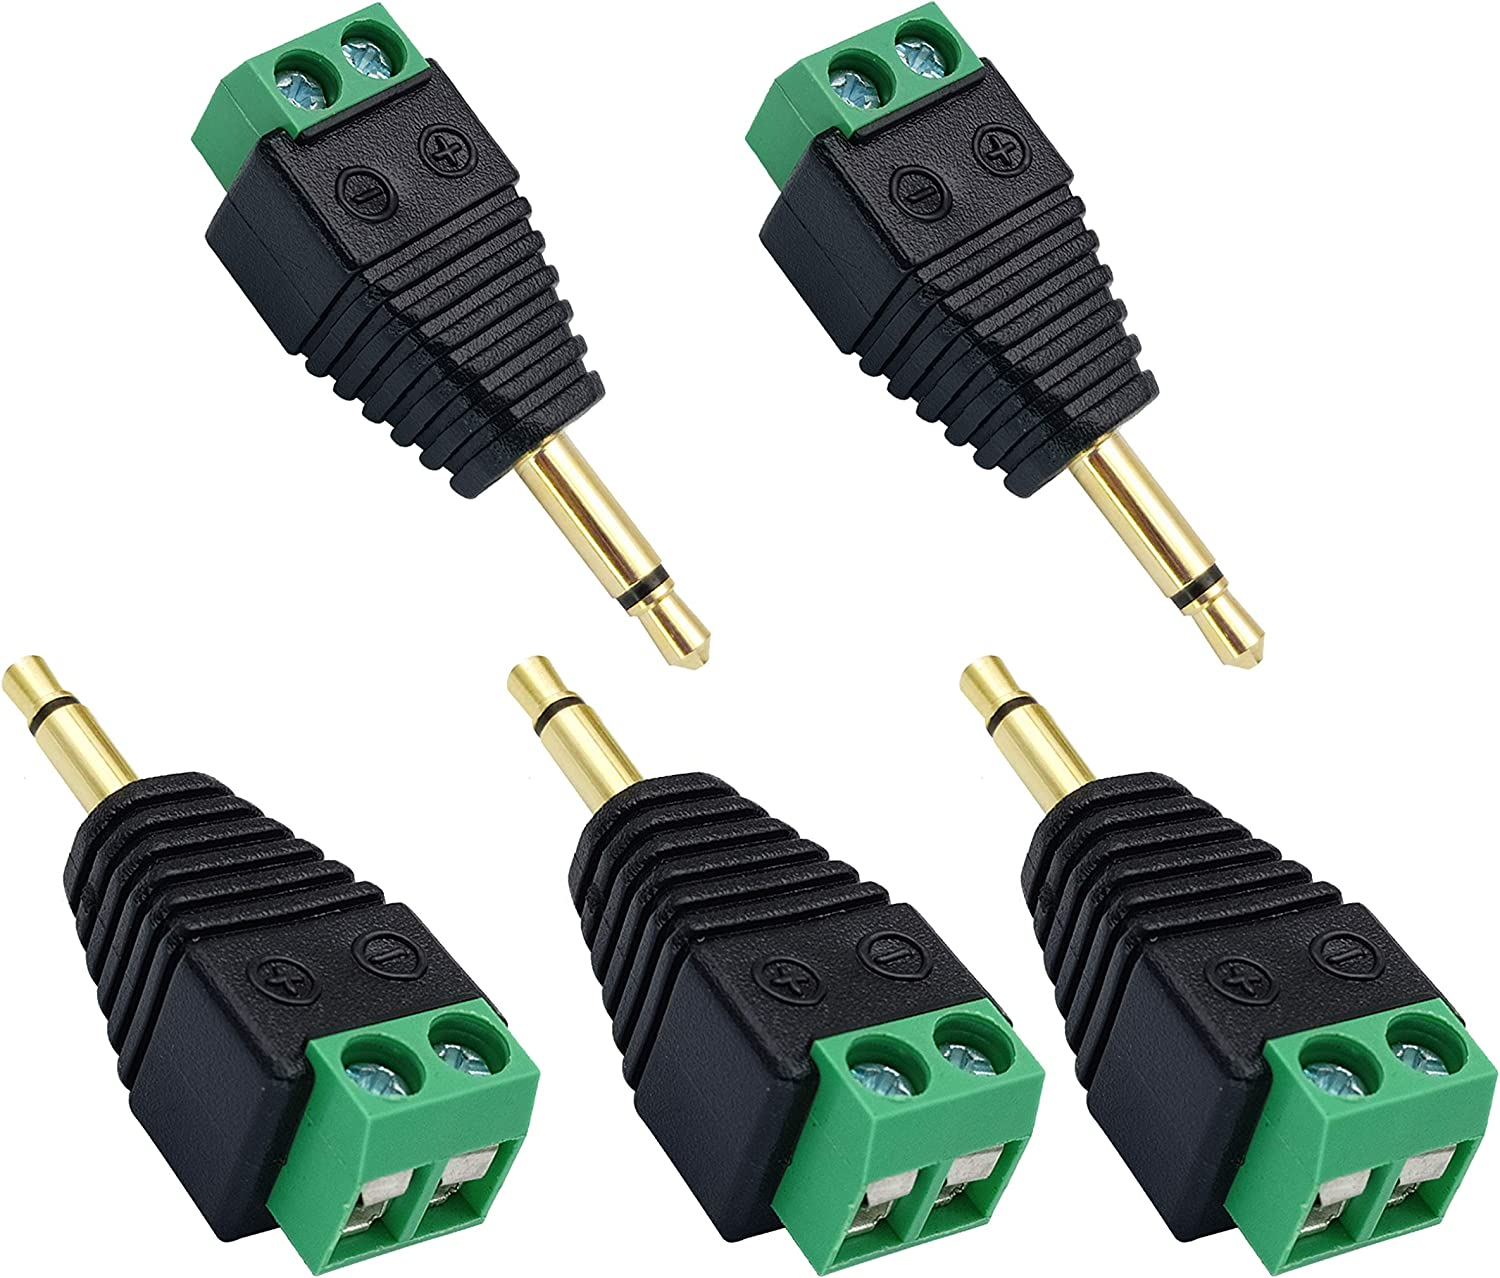 5-Pack//Female 1//8 TS Mono Female to 2 Pin Female Screw Terminal AUX Headphone Balun Solderless Converter Adapter AAOTOKK 3.5mm Screw Terminal Gold Plated 3.5mm